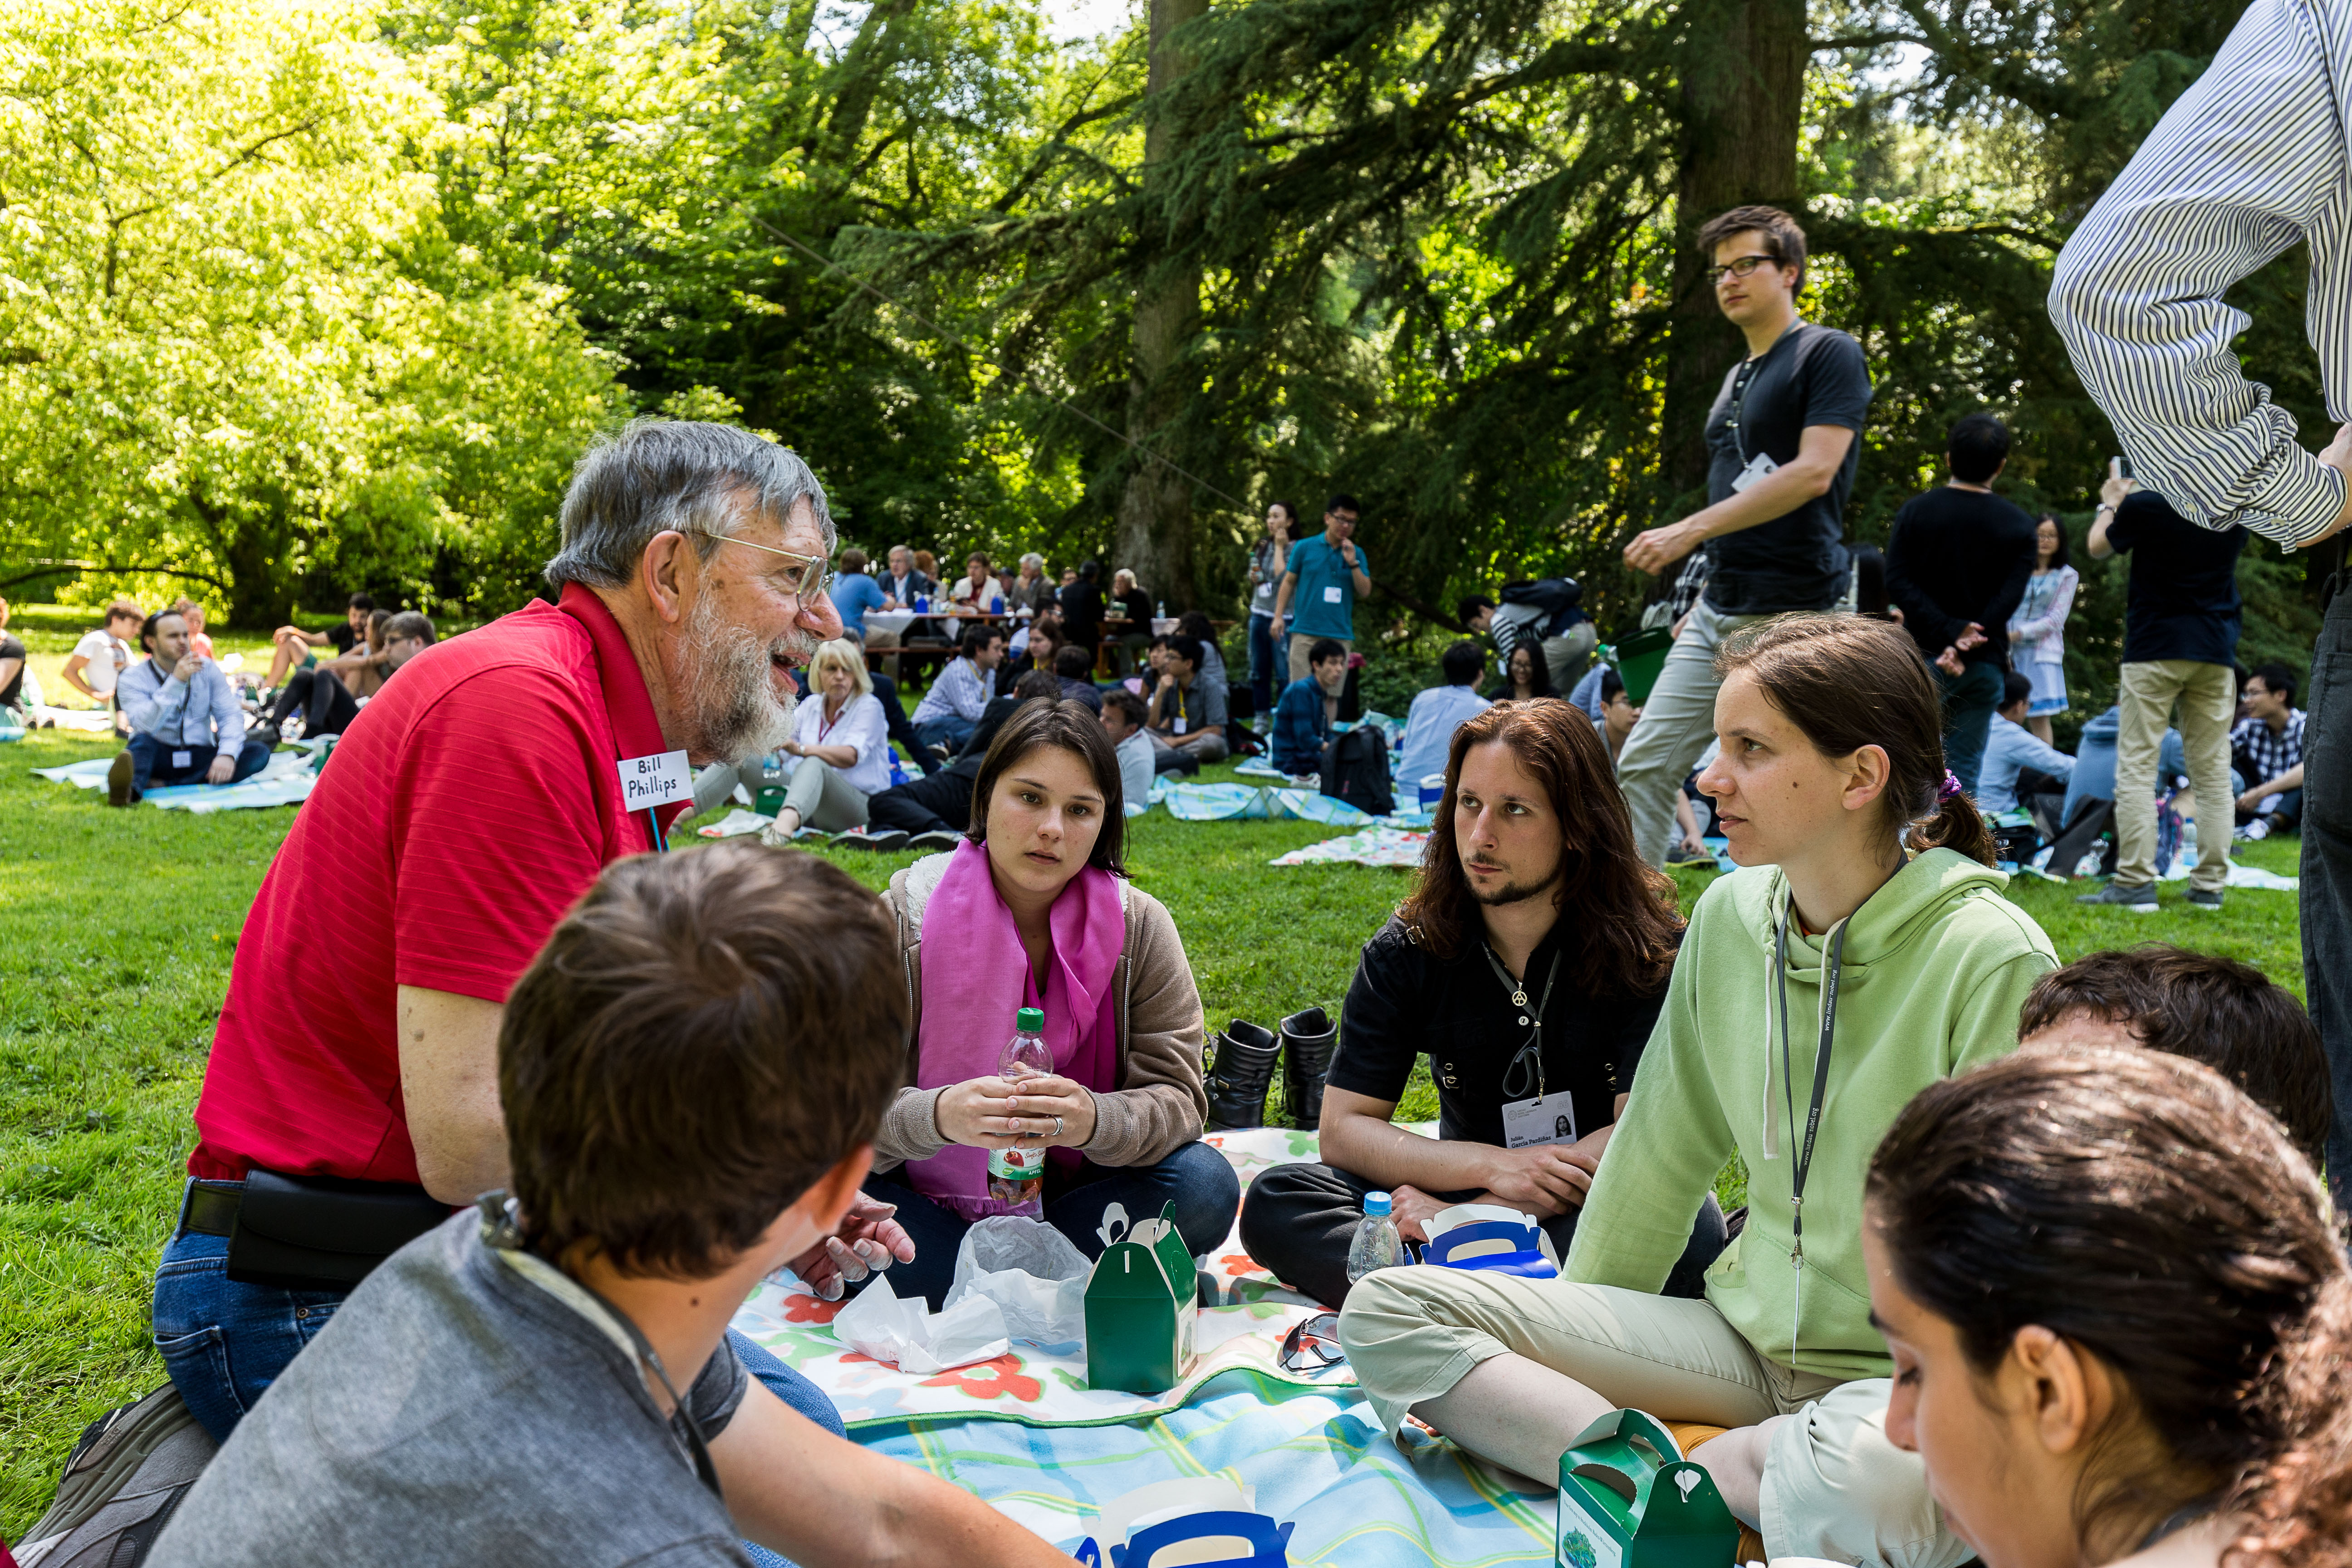 Nobel Laureate Bill Phillips with young scientists during the picnic on Mainau Island. Picture/Credit: Christian Flemming/Lindau Nobel Laureate Meeting